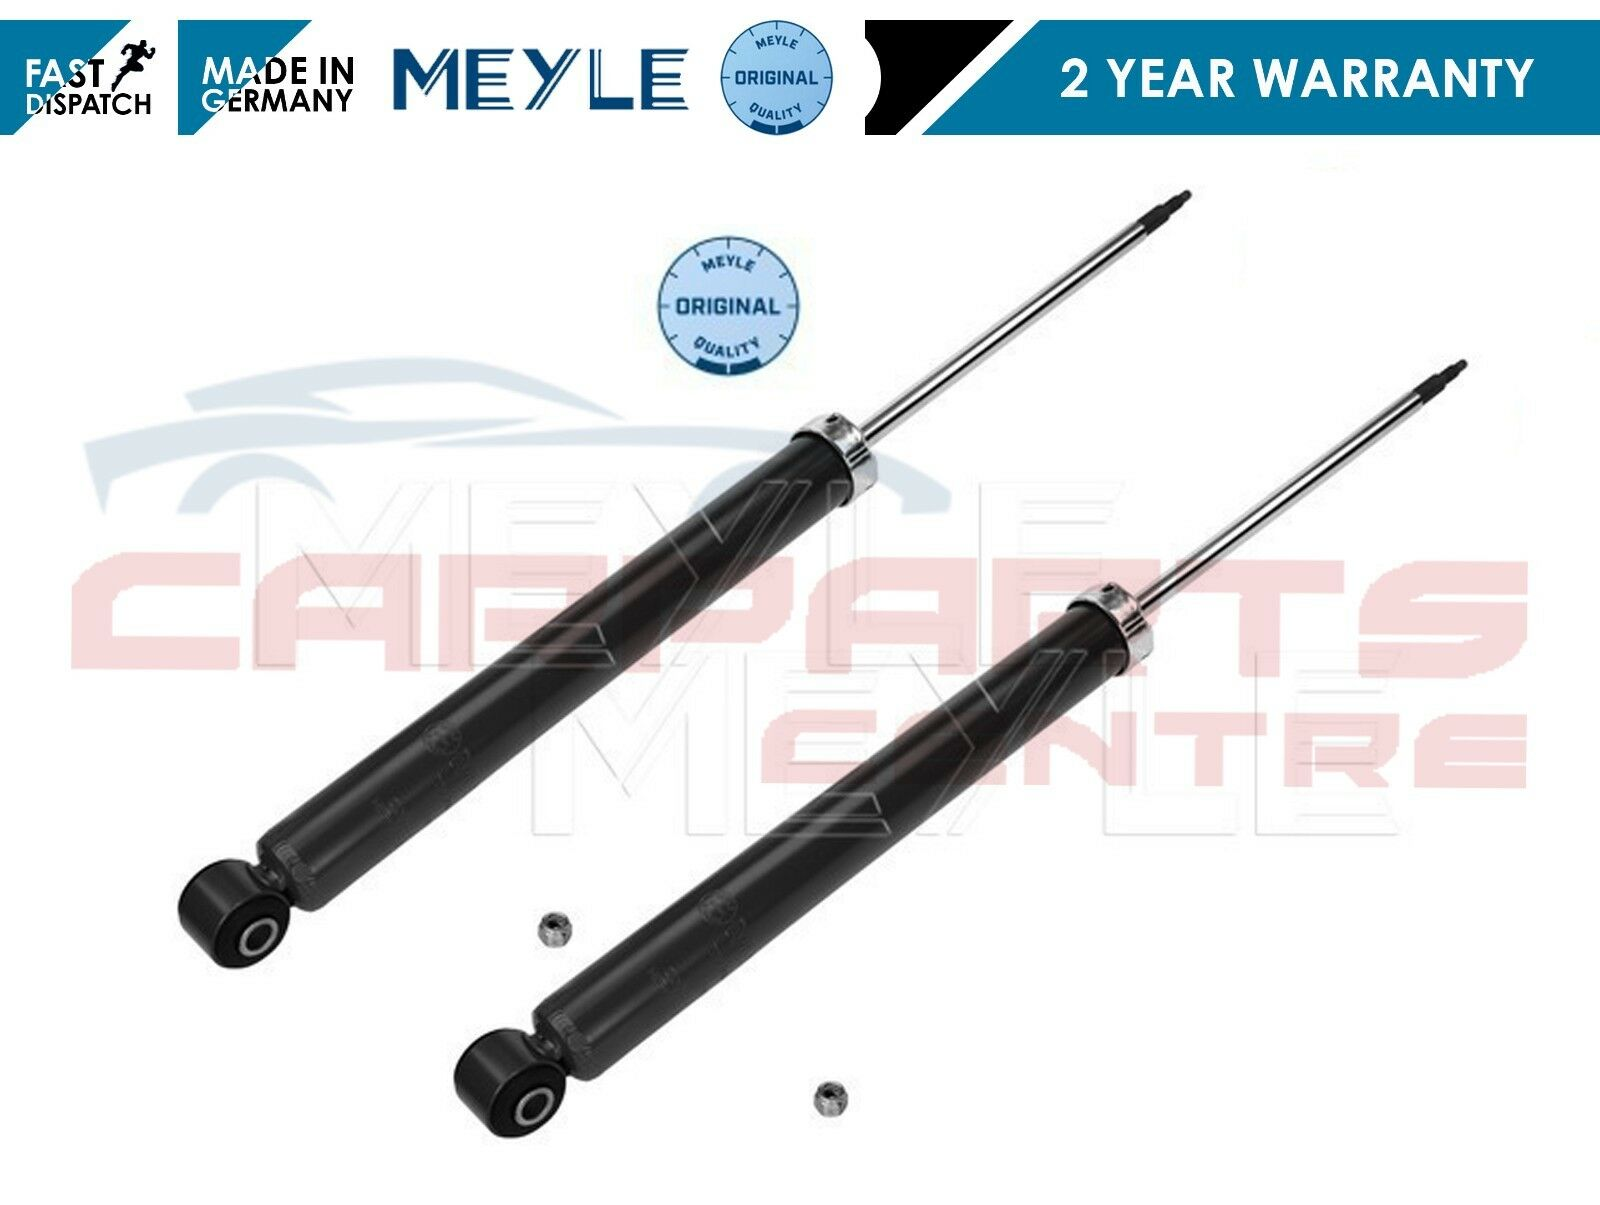 Shock Absorber Fits Front Left Ford Focus DAW DBW 1.4 16V 1998-2004